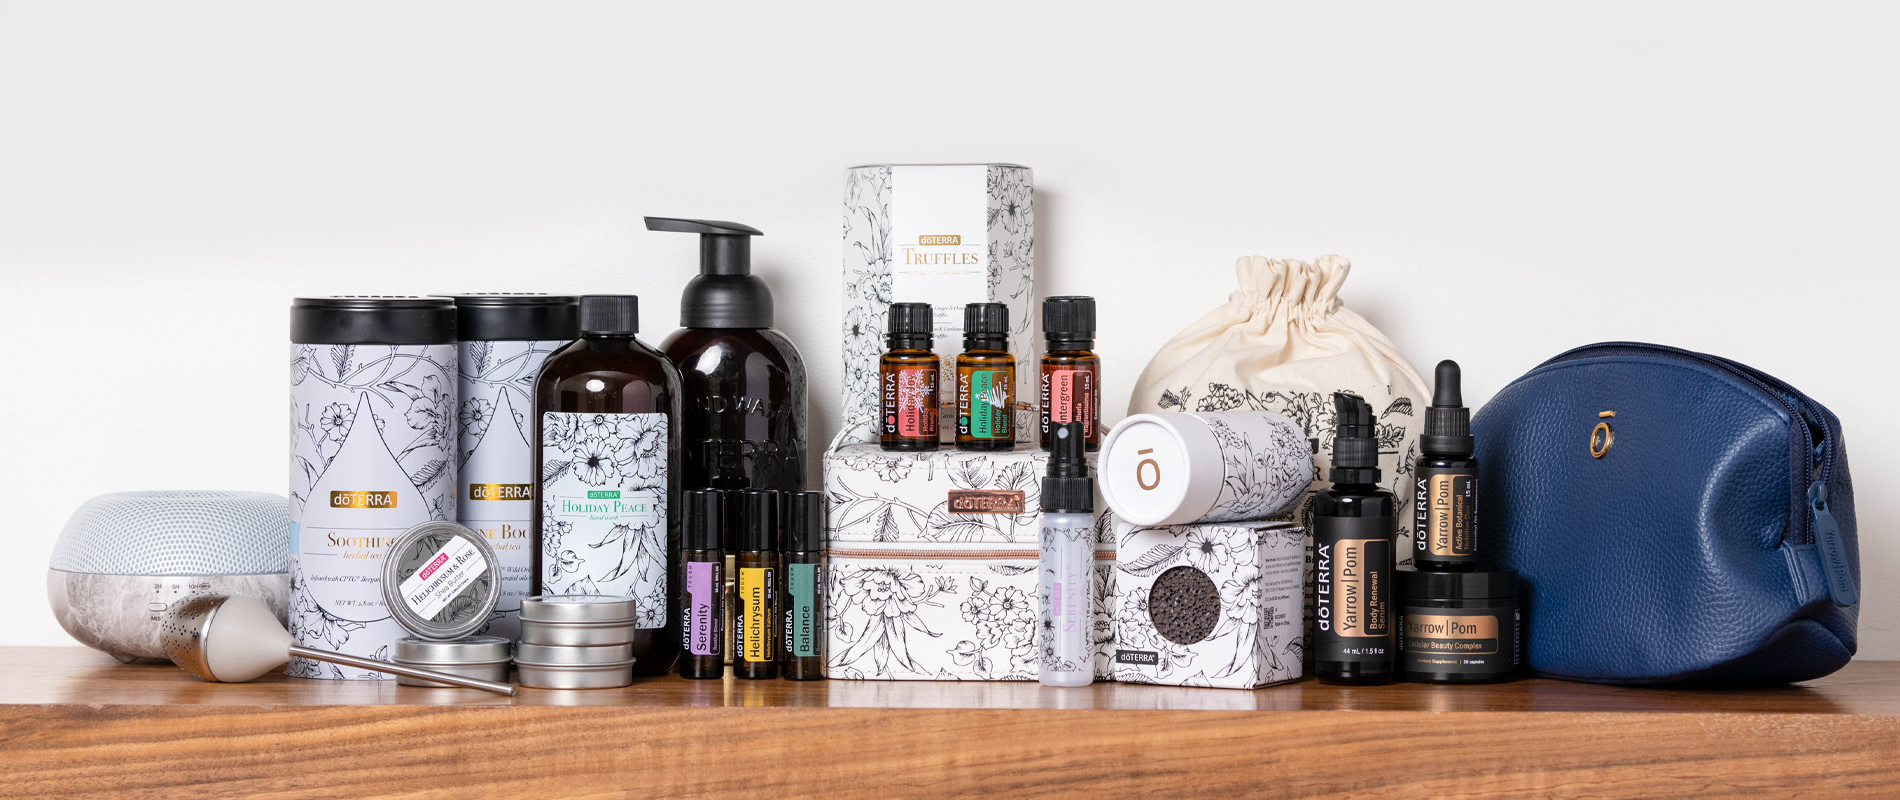 doTERRA's Essential Oils